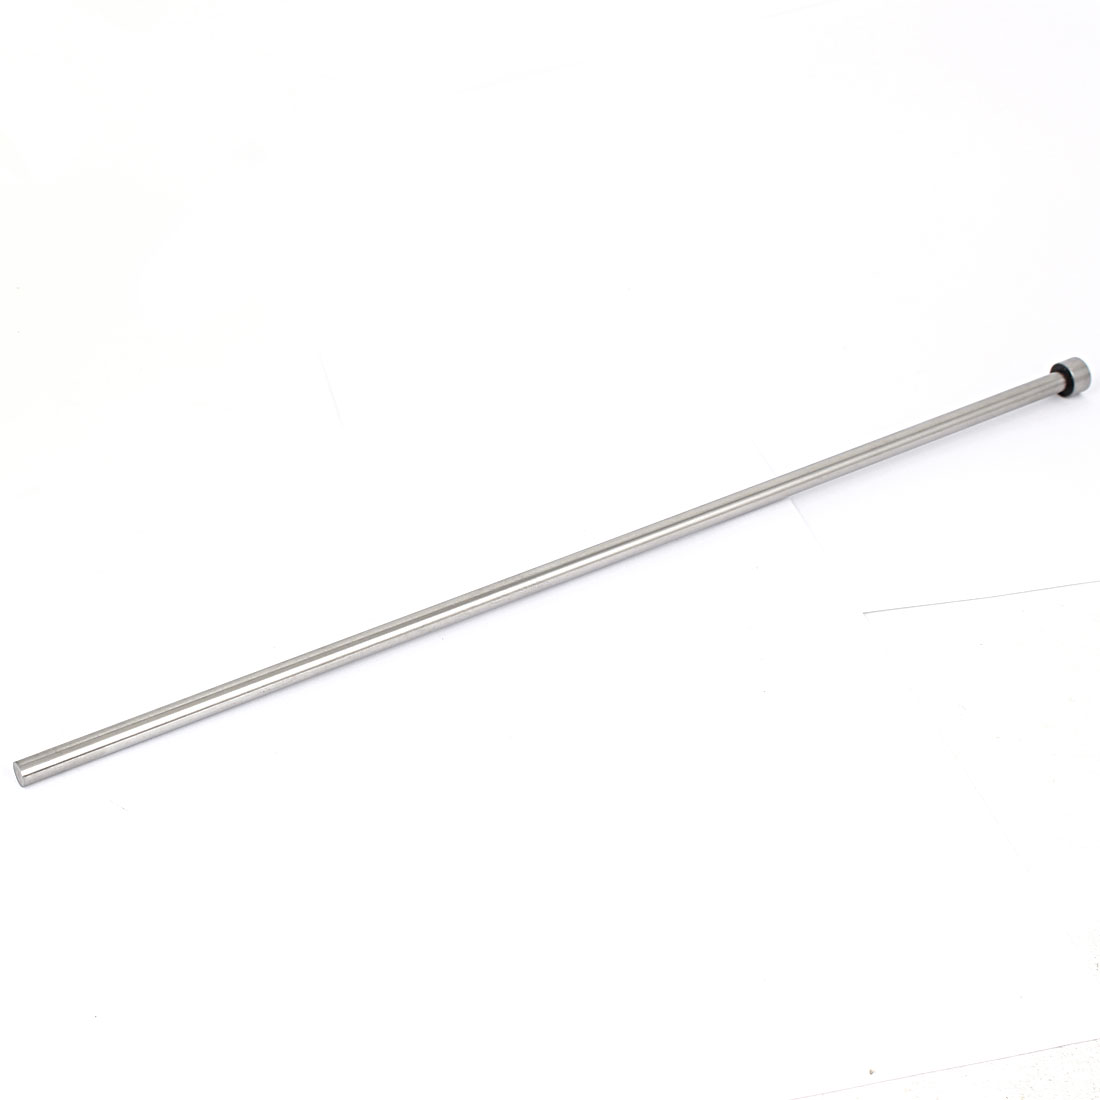 7.5mm Diameter Round Tip Steel Straight Ejector Pin Punch 400mm Long Silver Gray